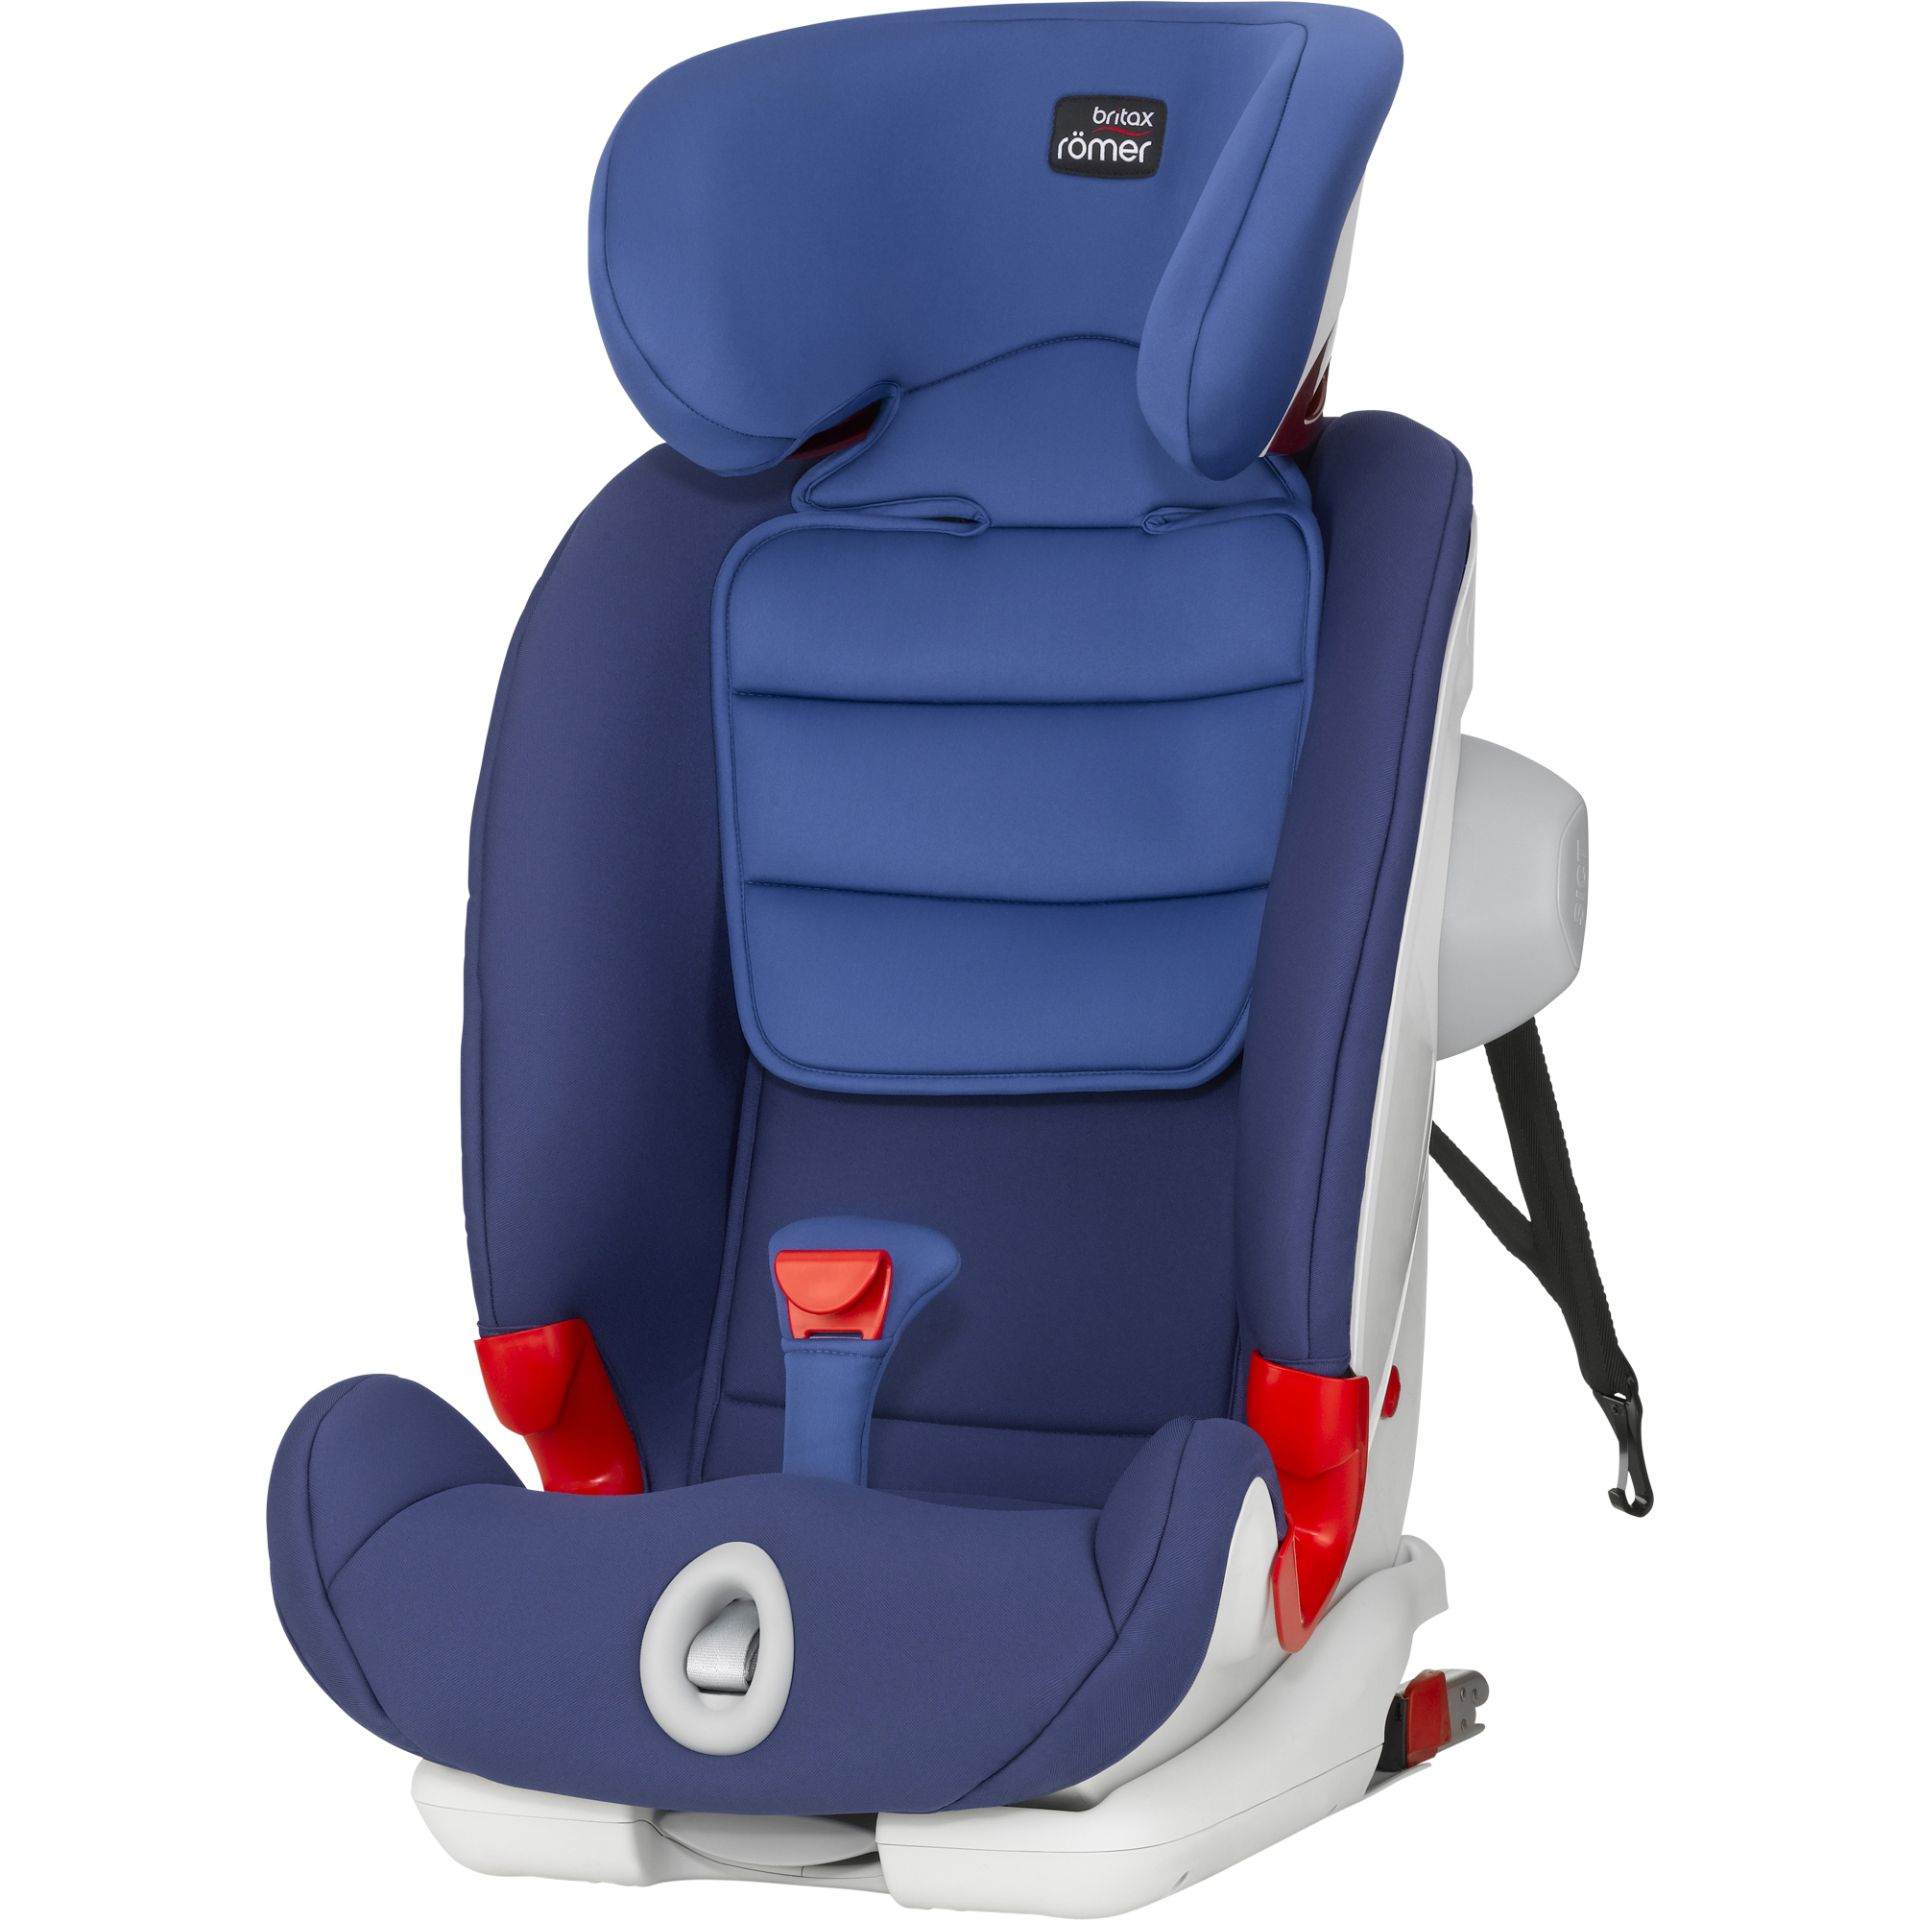 britax r mer car seat advansafix iii sict 2018 ocean blue buy at kidsroom car seats. Black Bedroom Furniture Sets. Home Design Ideas